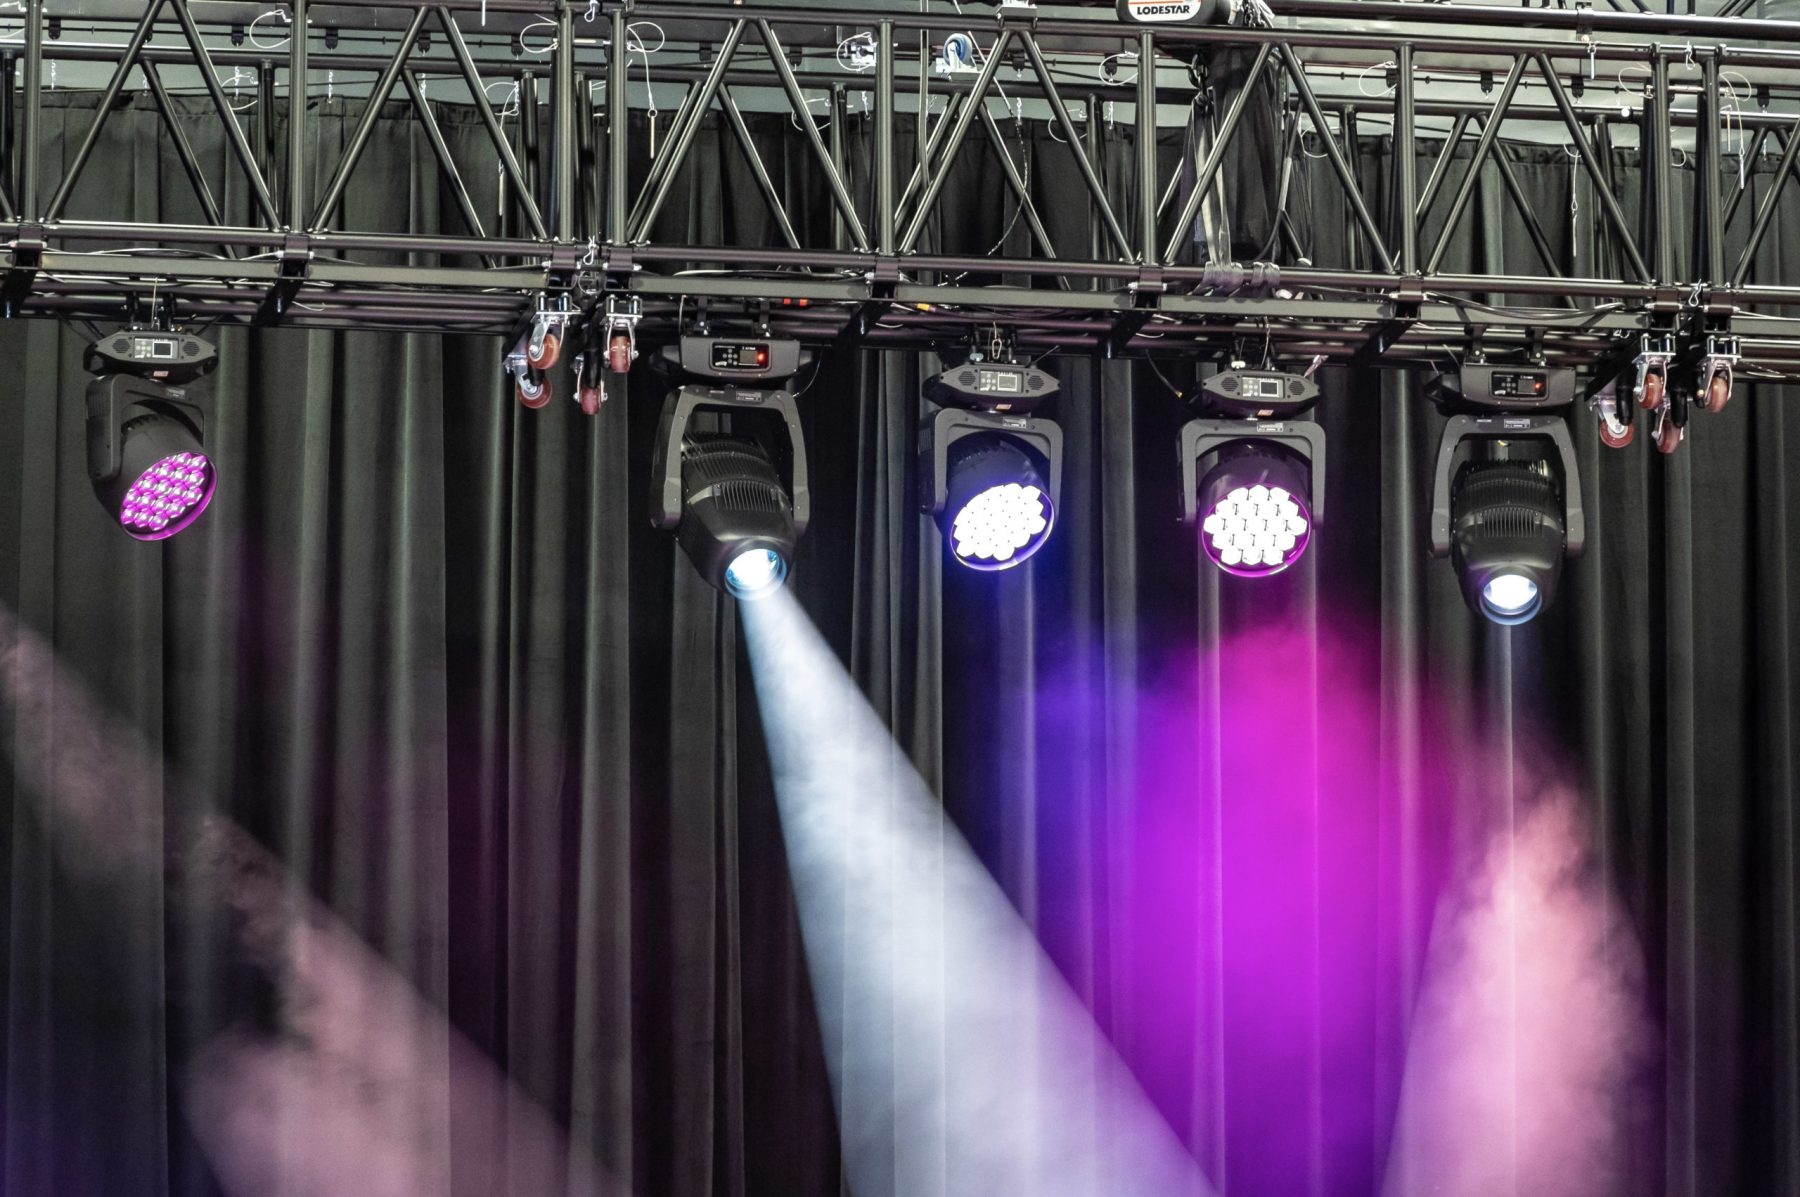 The venue is outfitted with state-of-the-art lighting and audio equipment. Photo by Phil Armstrong.